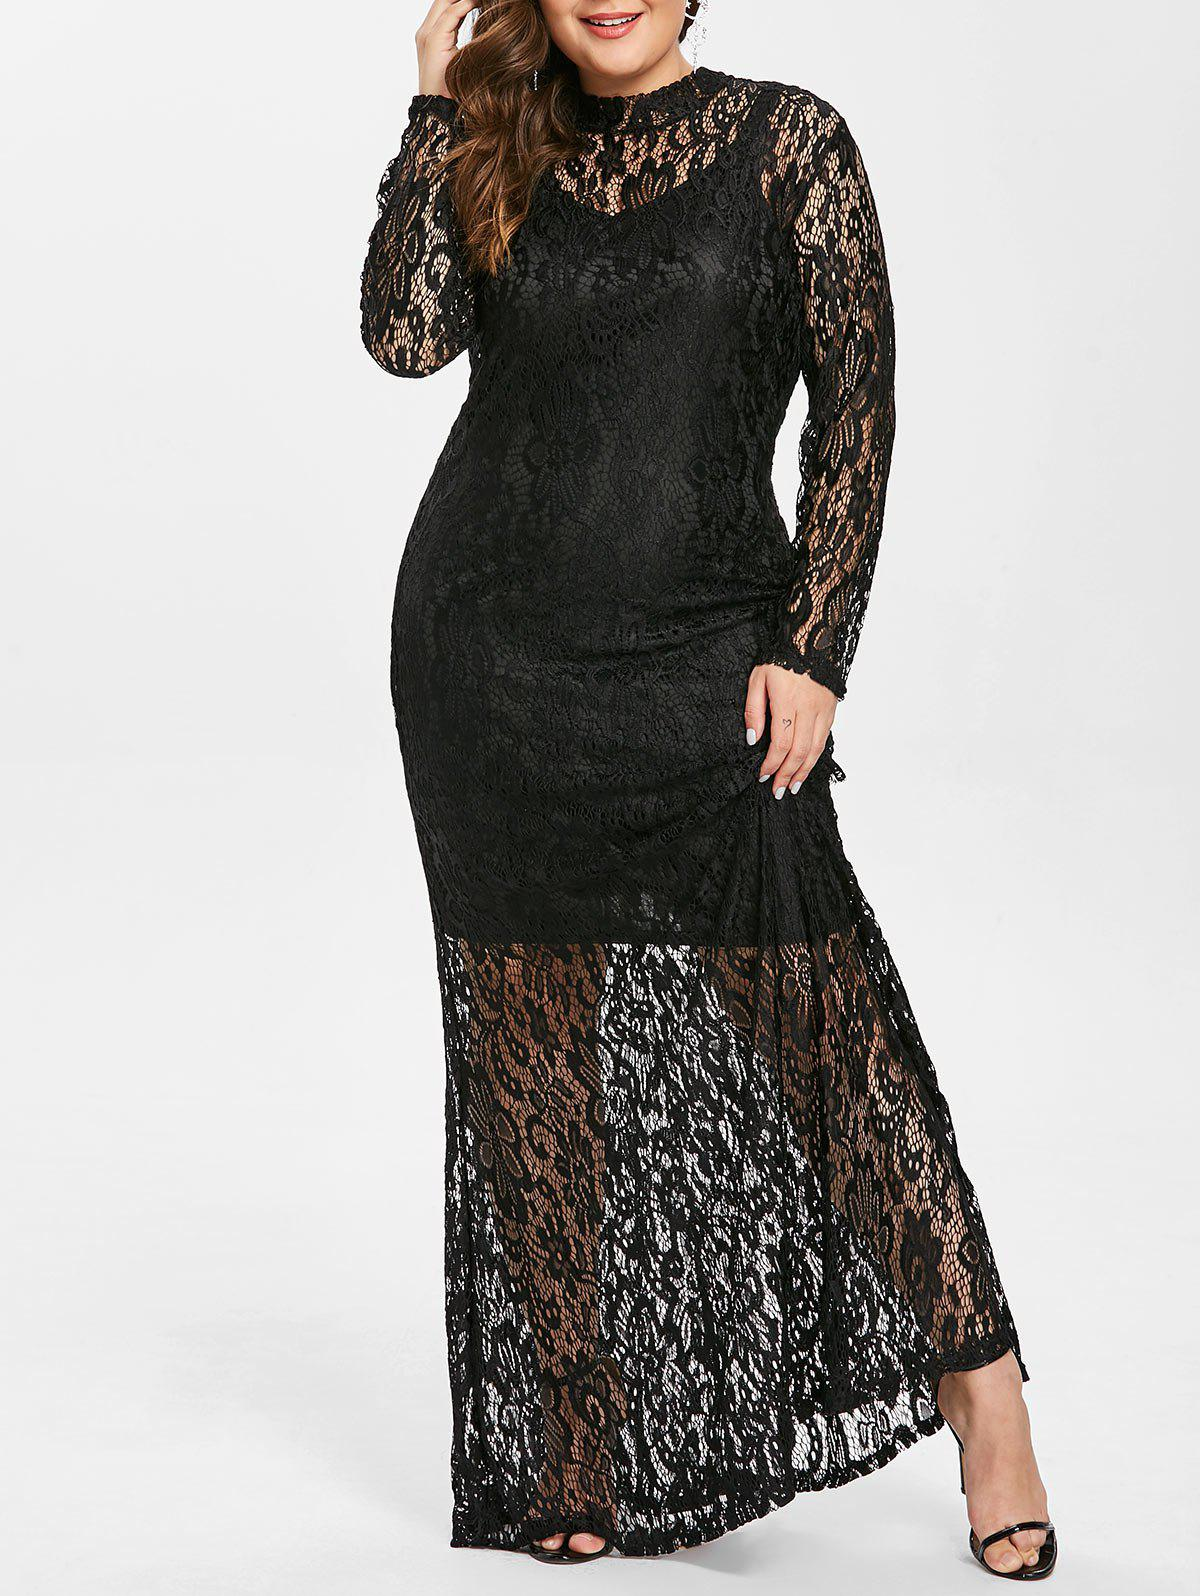 Store Mock Neck Plus Size Lace Longline Dress